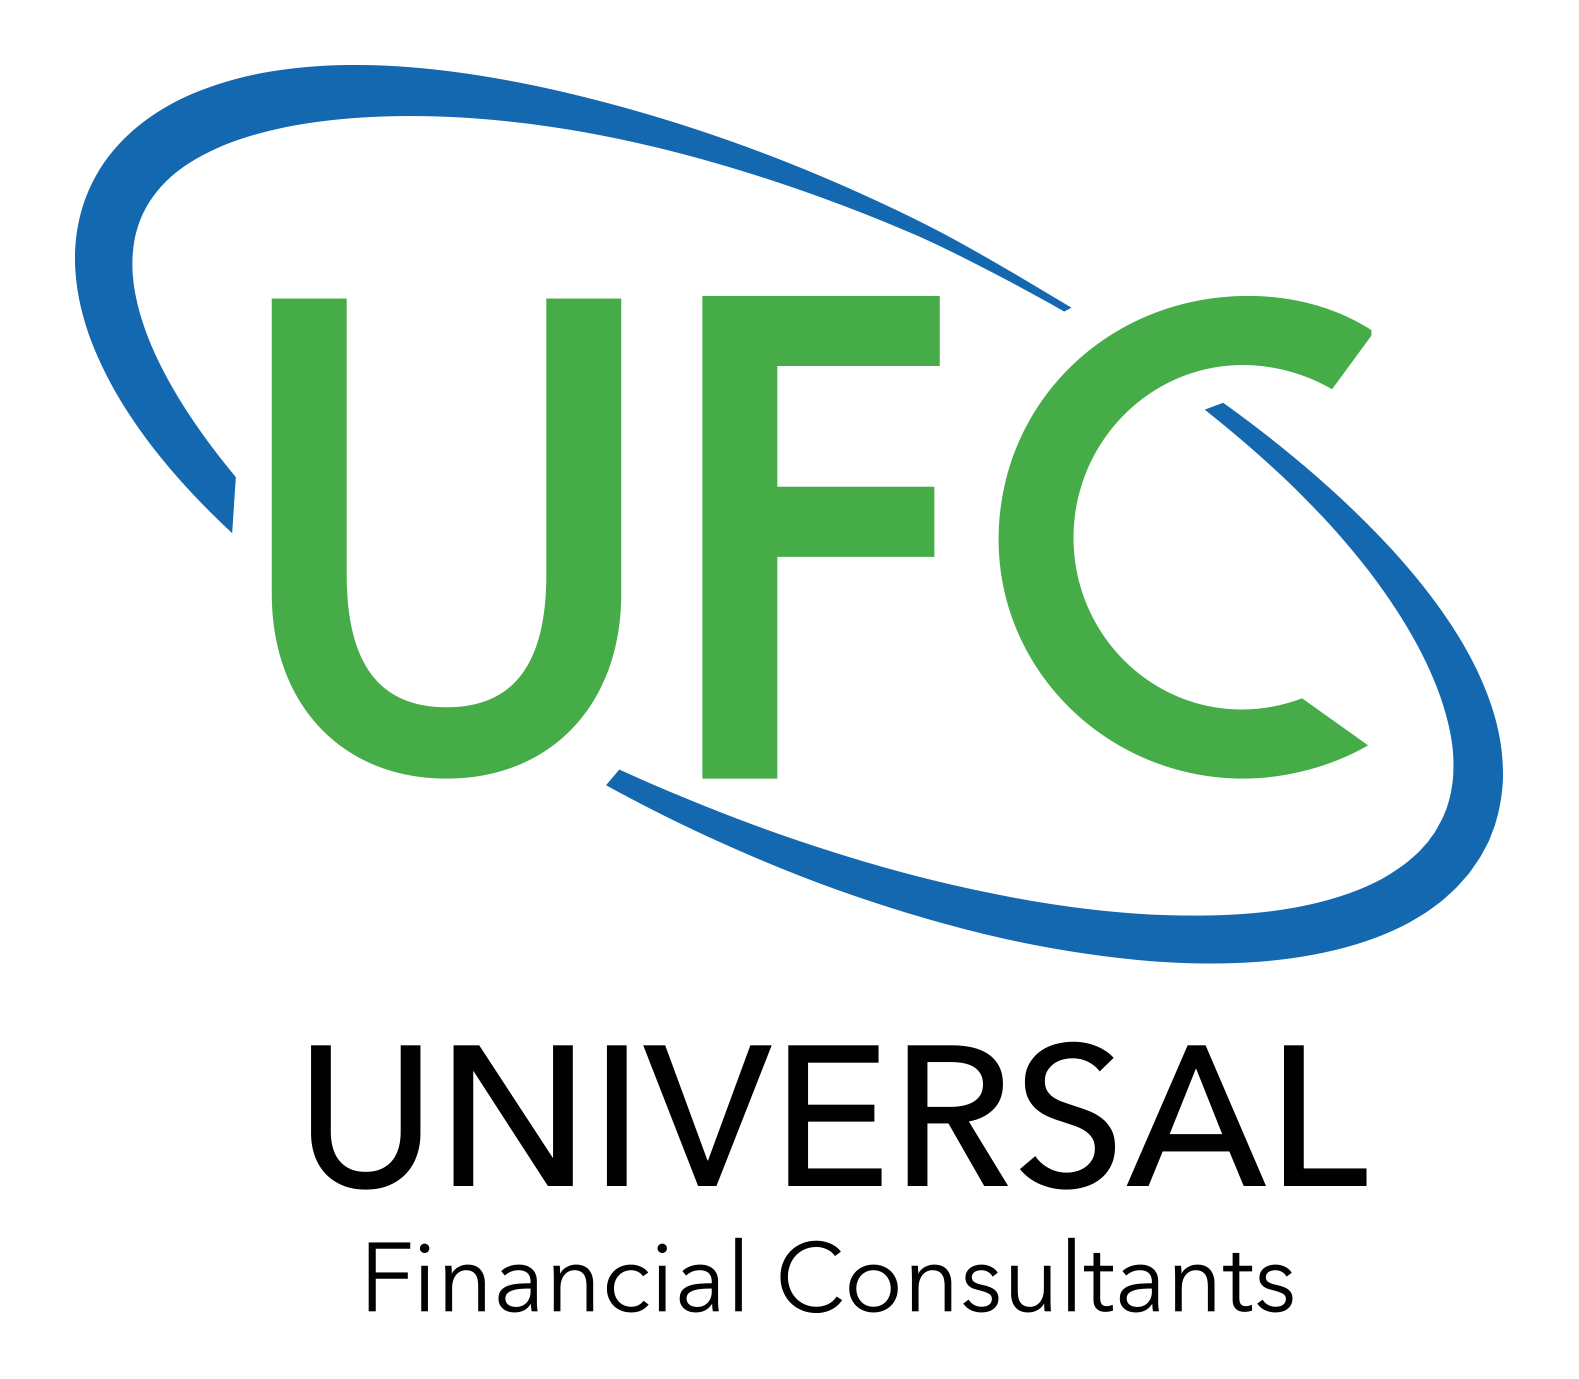 UFC for Accounting logo